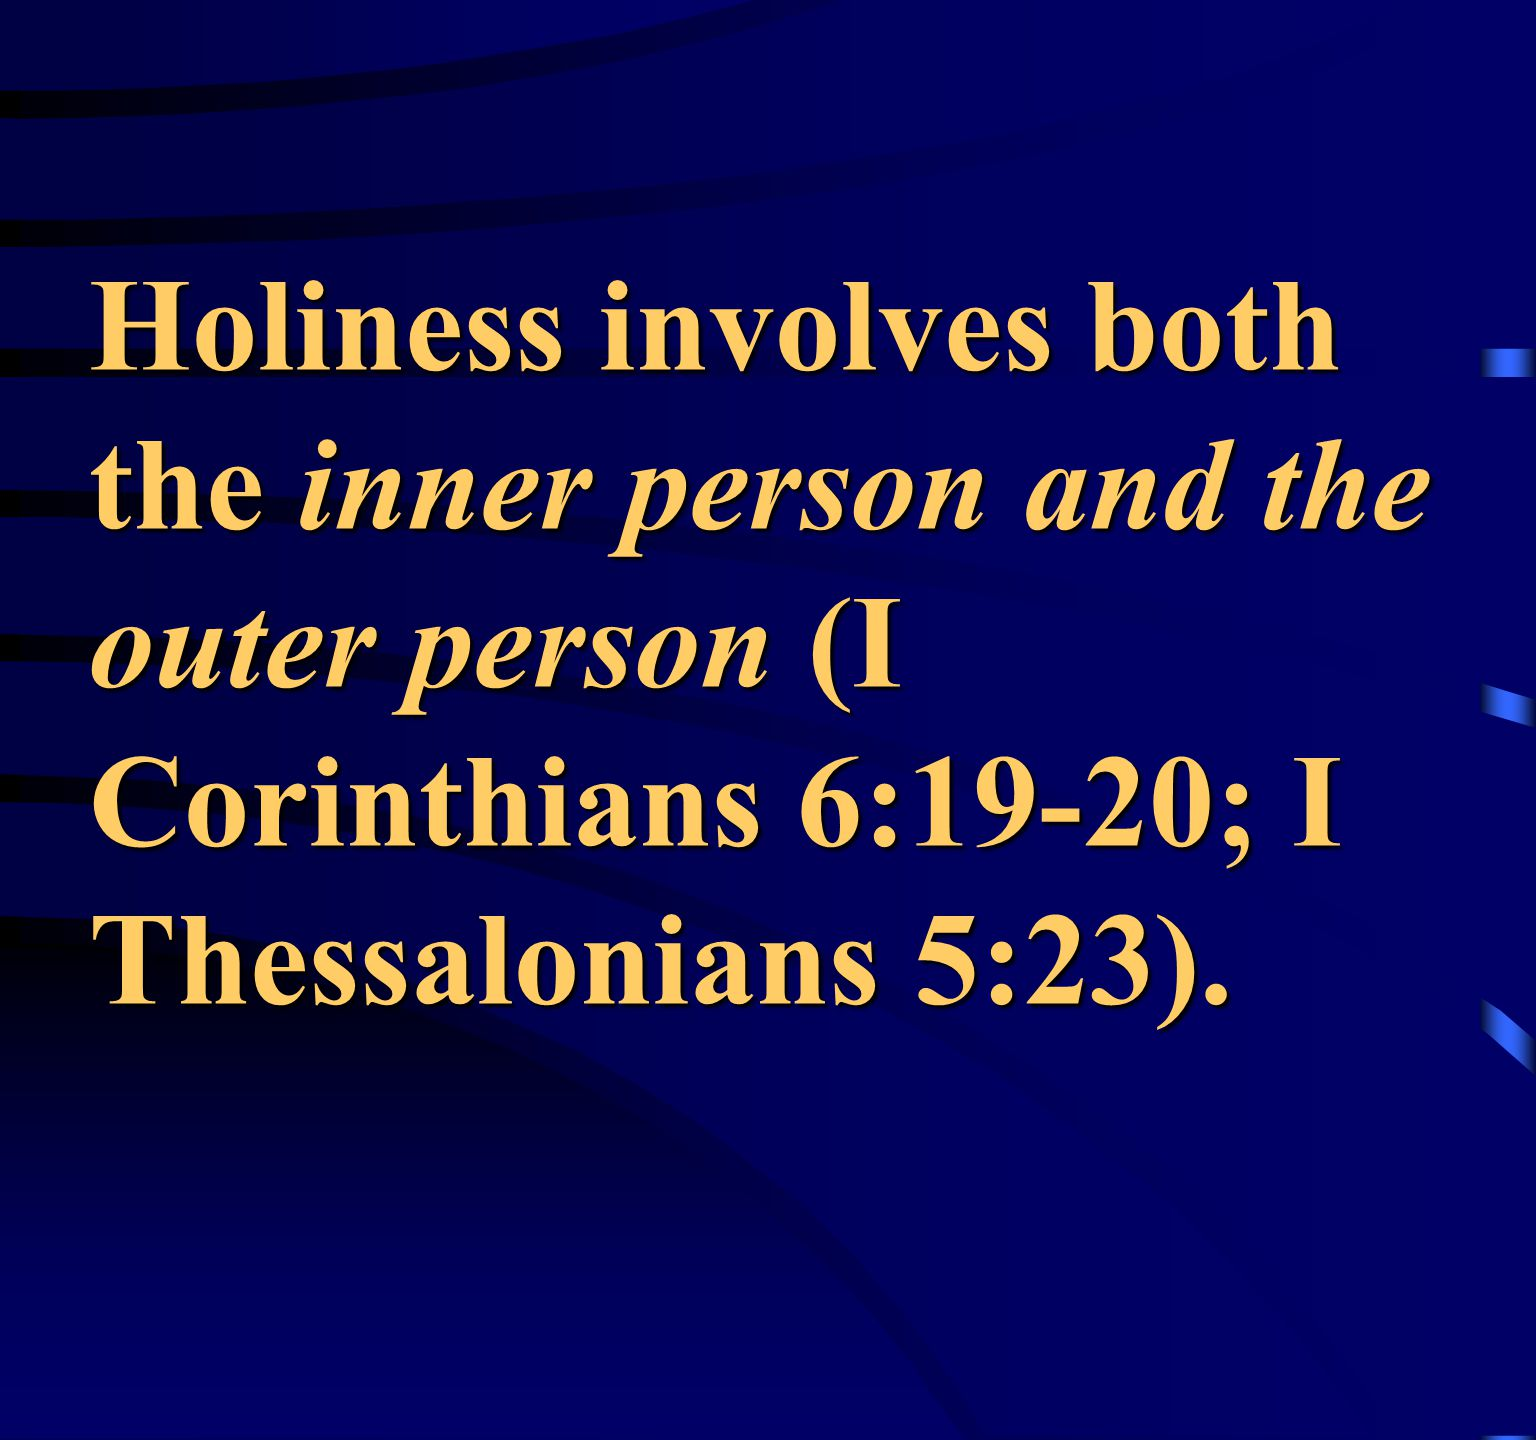 Holiness involves both the inner person and the outer person (I Corinthians 6:19-20; I Thessalonians 5:23).